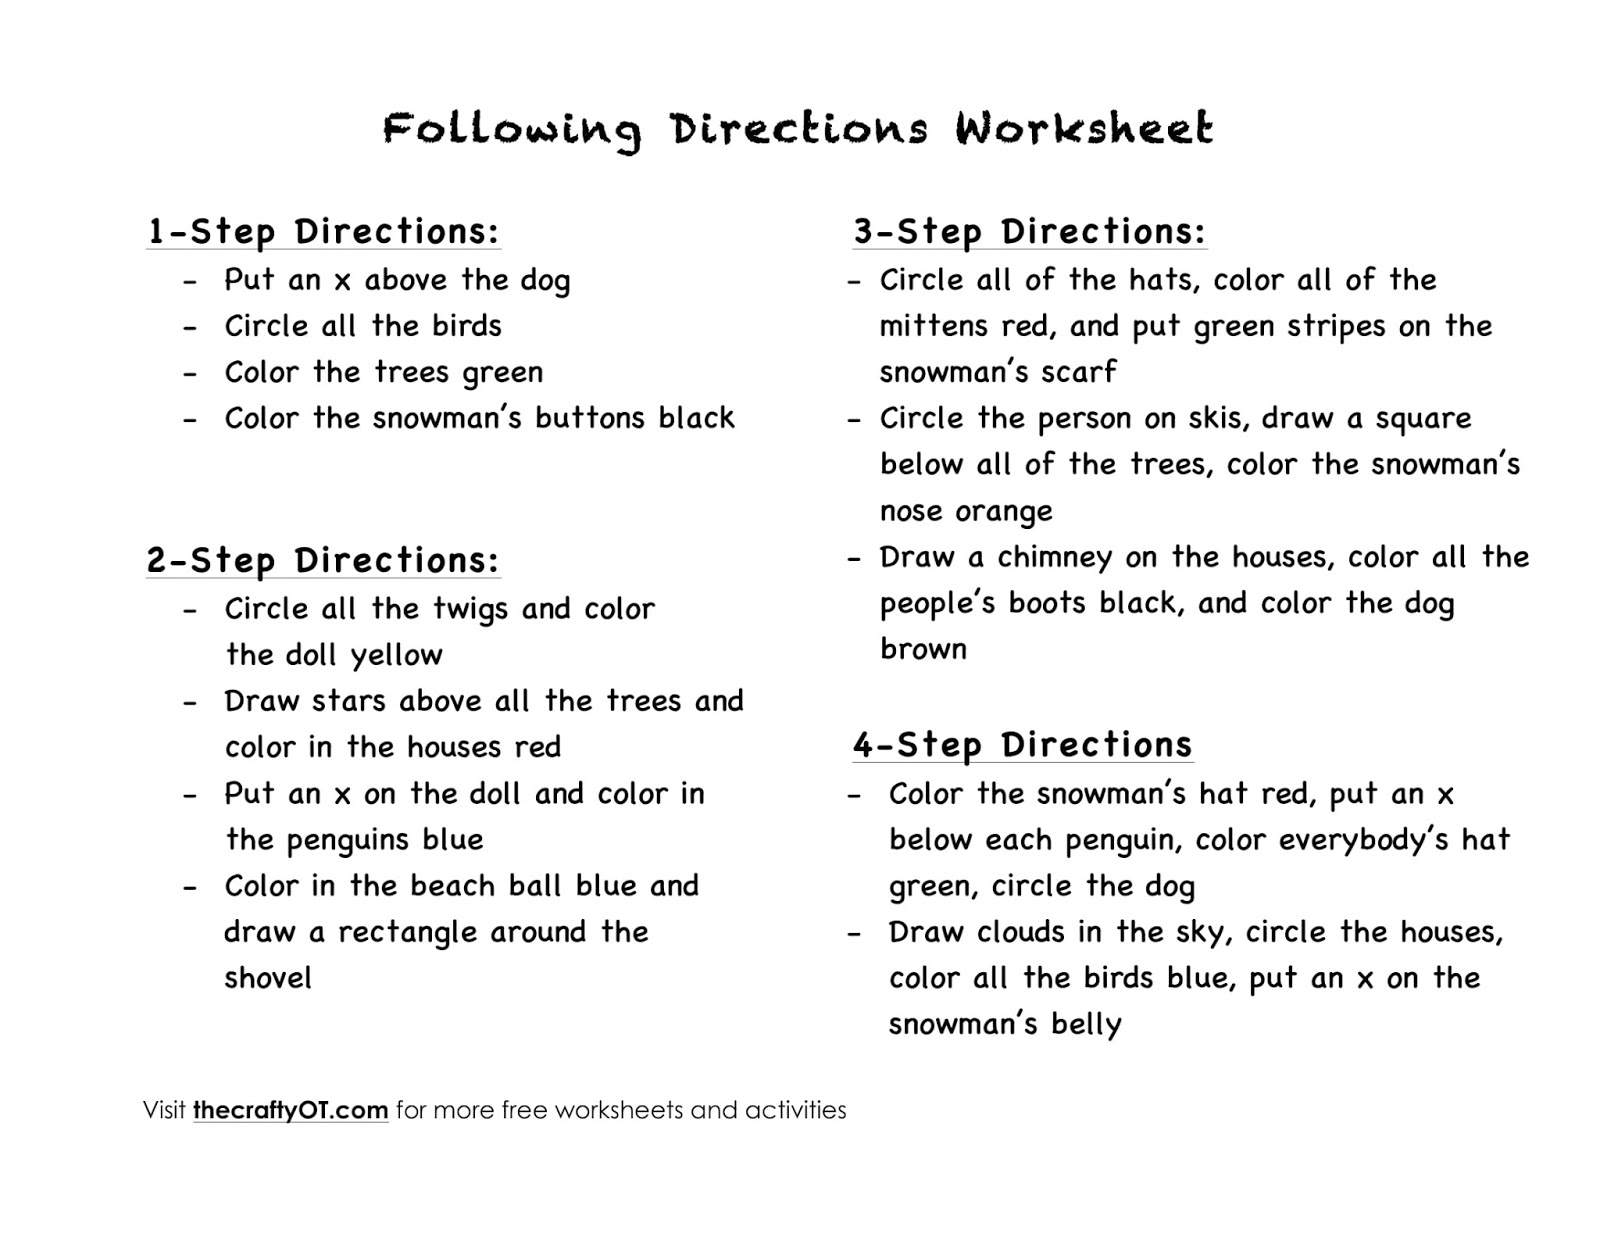 worksheet Visual Scanning Worksheets the crafty ot free winter worksheets works on following multi step directions memory recall of verbal or written instructions auditory processing visual scanning